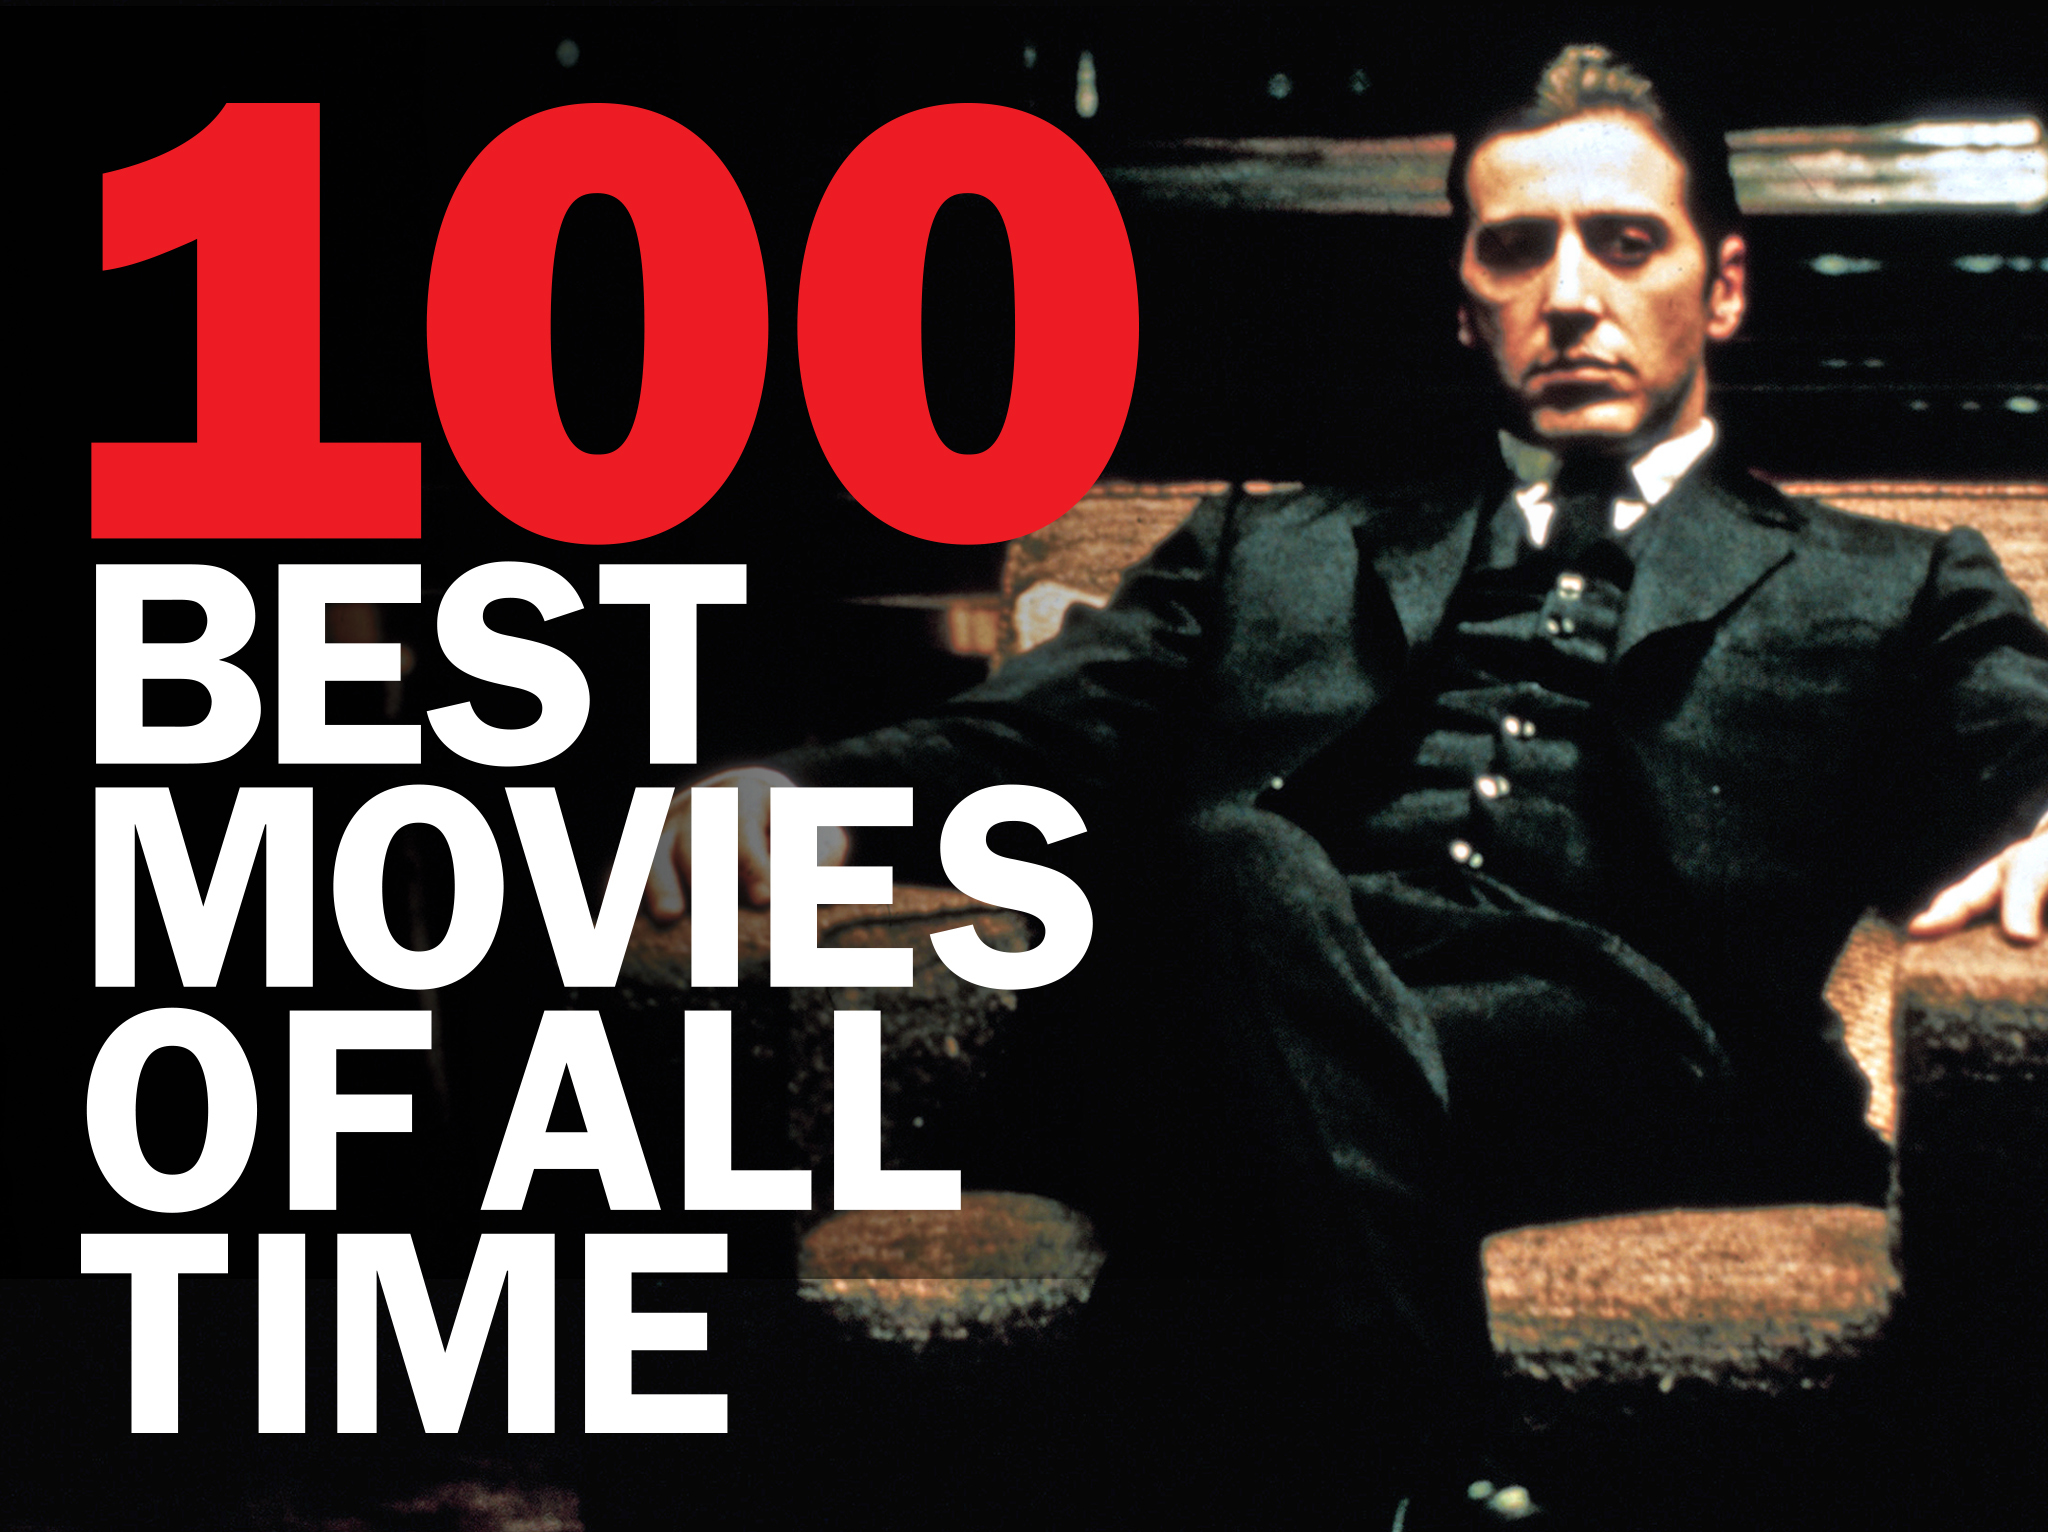 Pokies Make All Top Of Time 100 Movies Hollywood submit